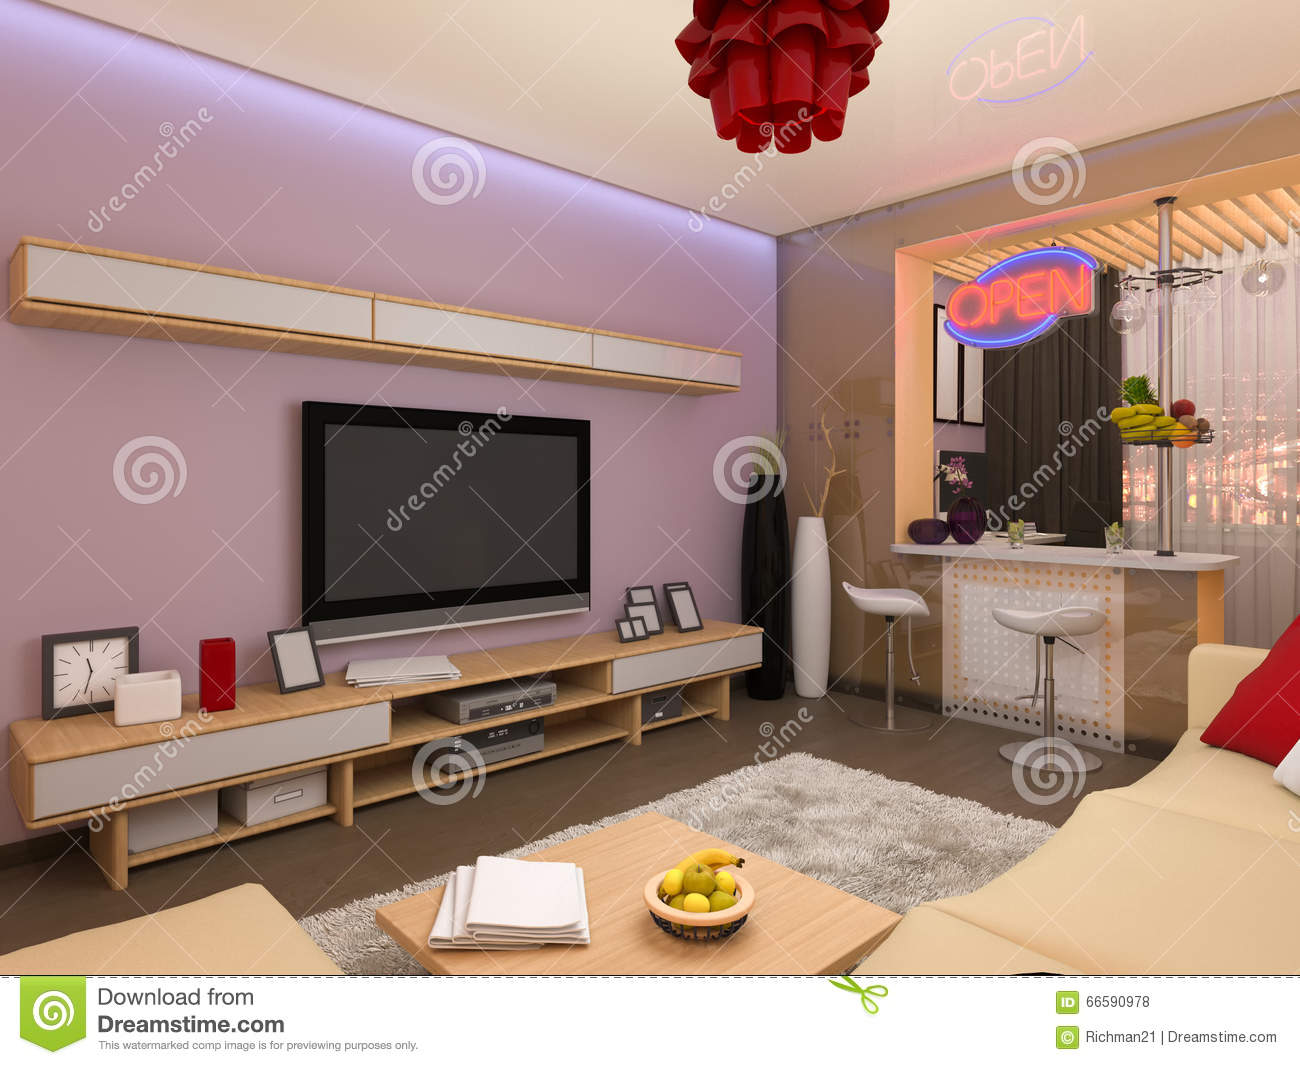 3d render of the interior design of the living room in a modern s stock illustration image - In drowing room interiar design ...